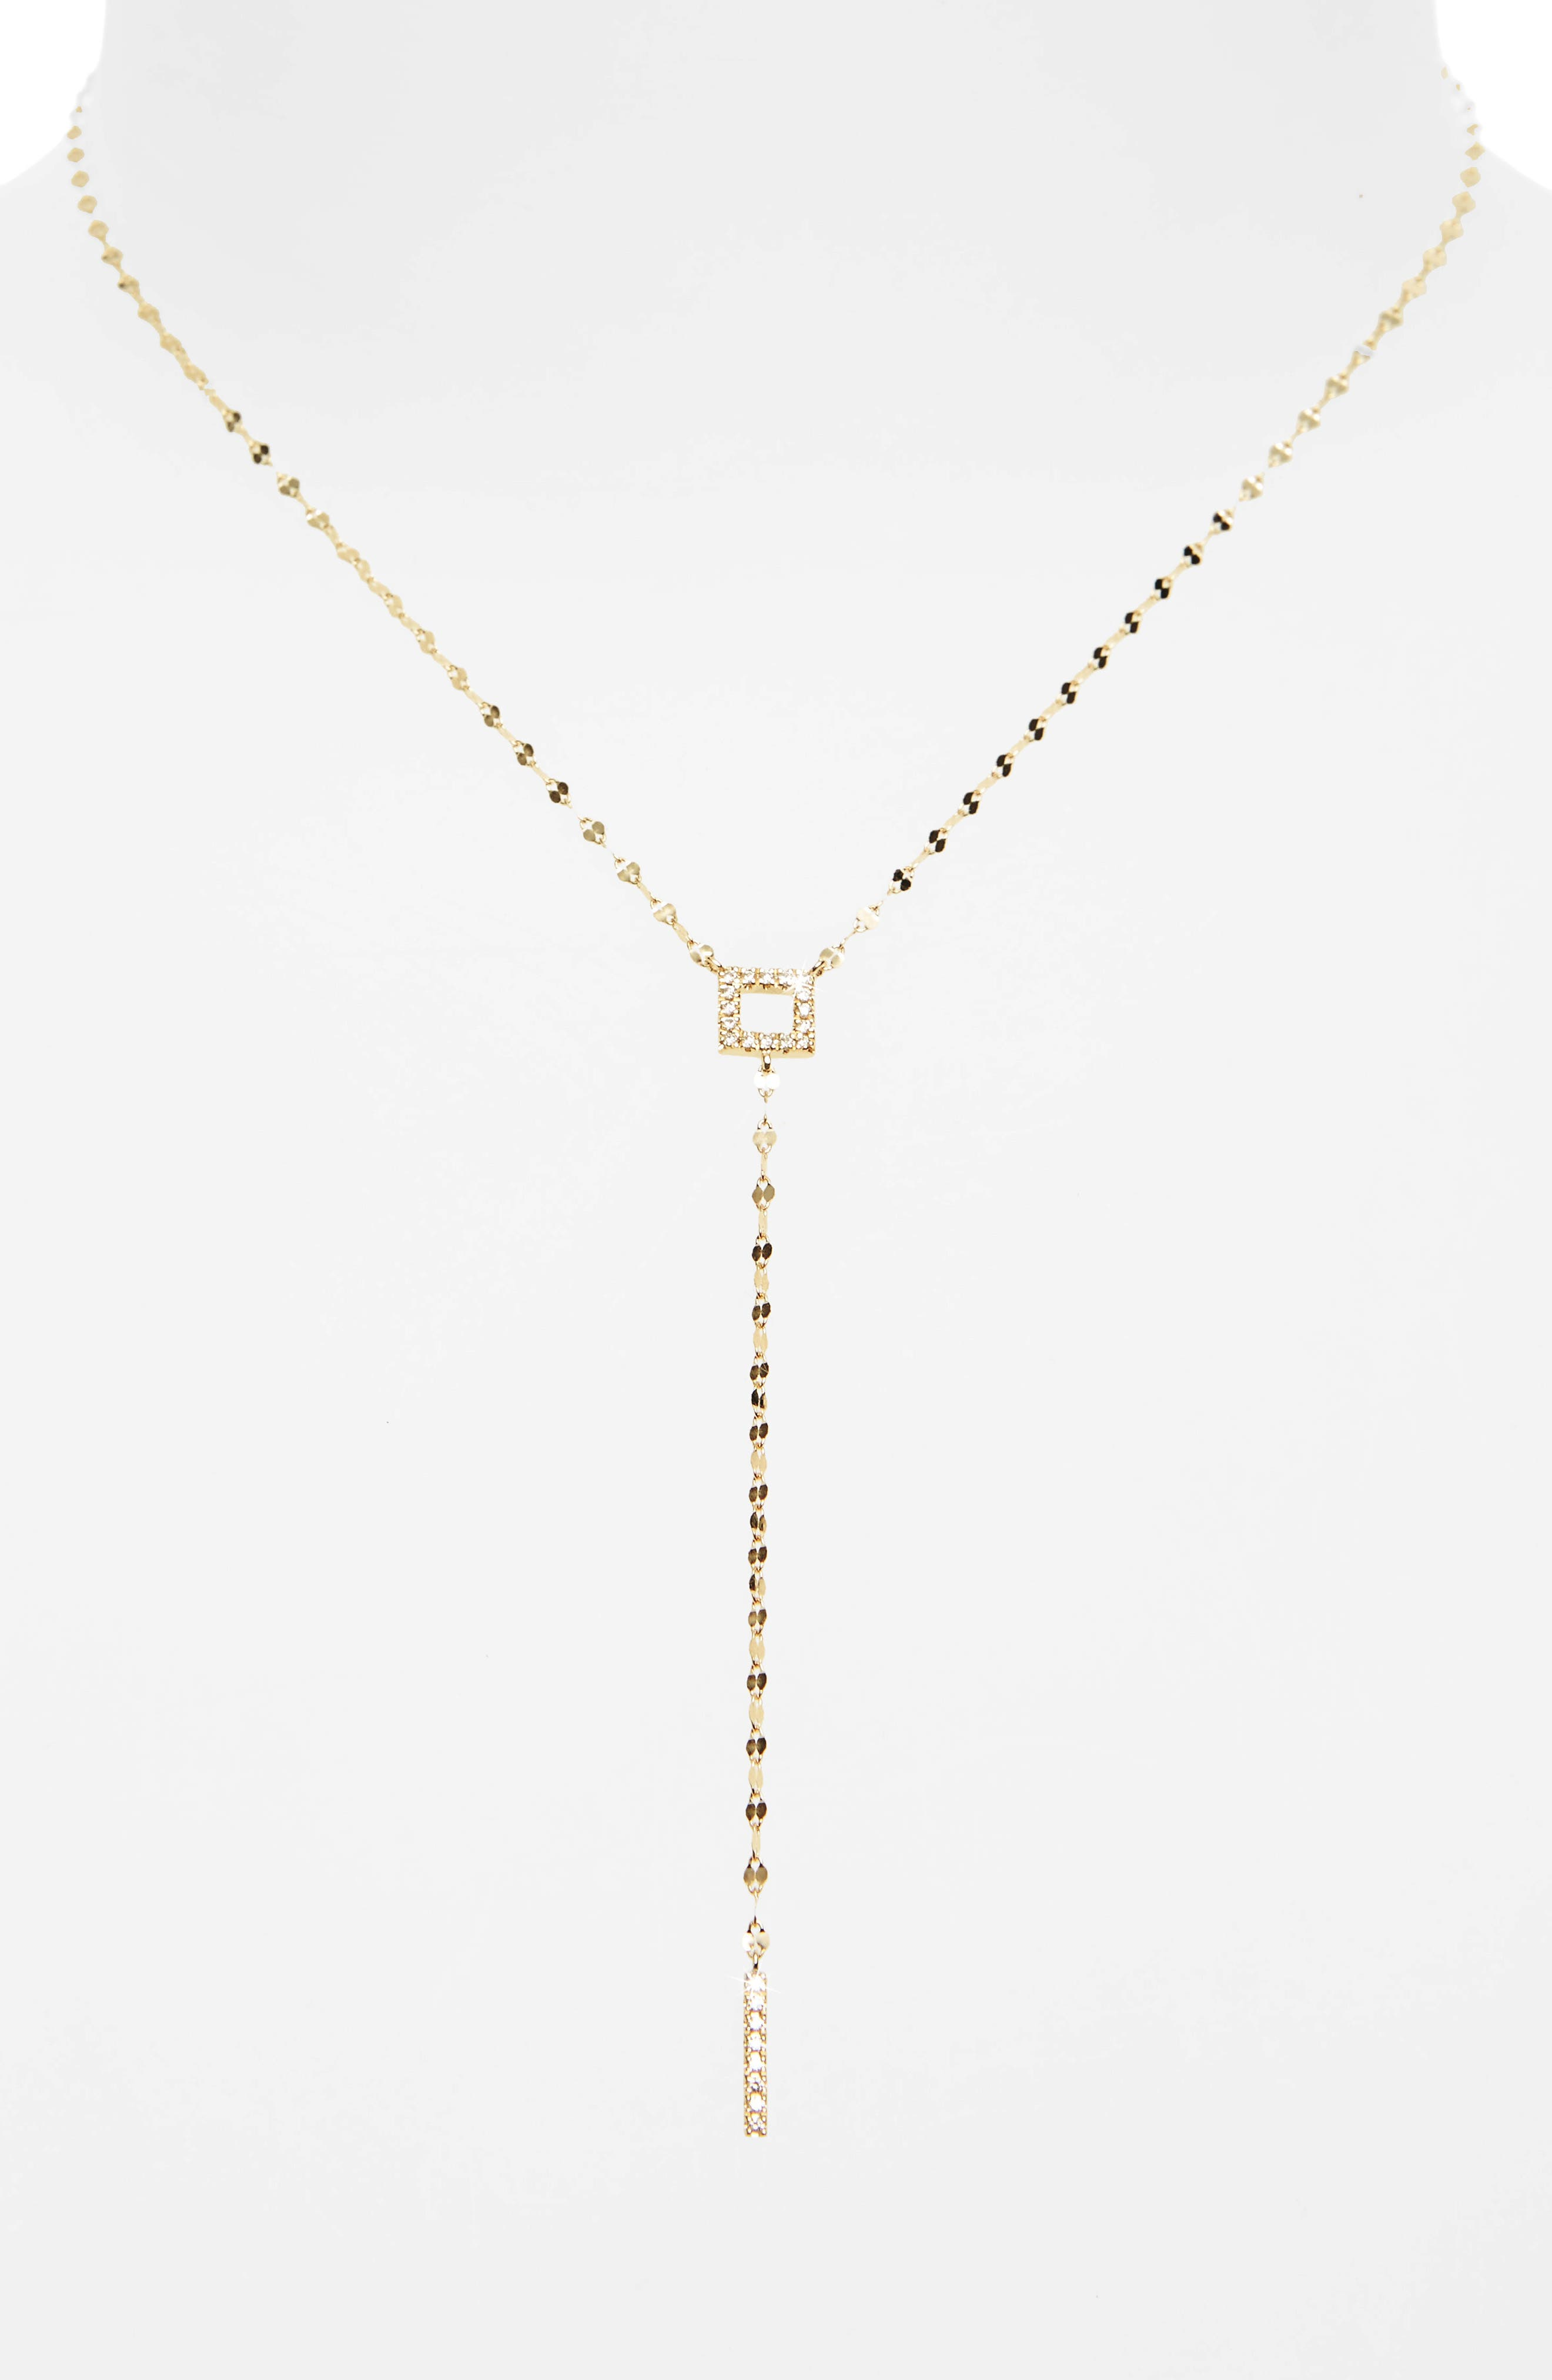 Diamond Lariat Necklace,                             Main thumbnail 1, color,                             YELLOW GOLD